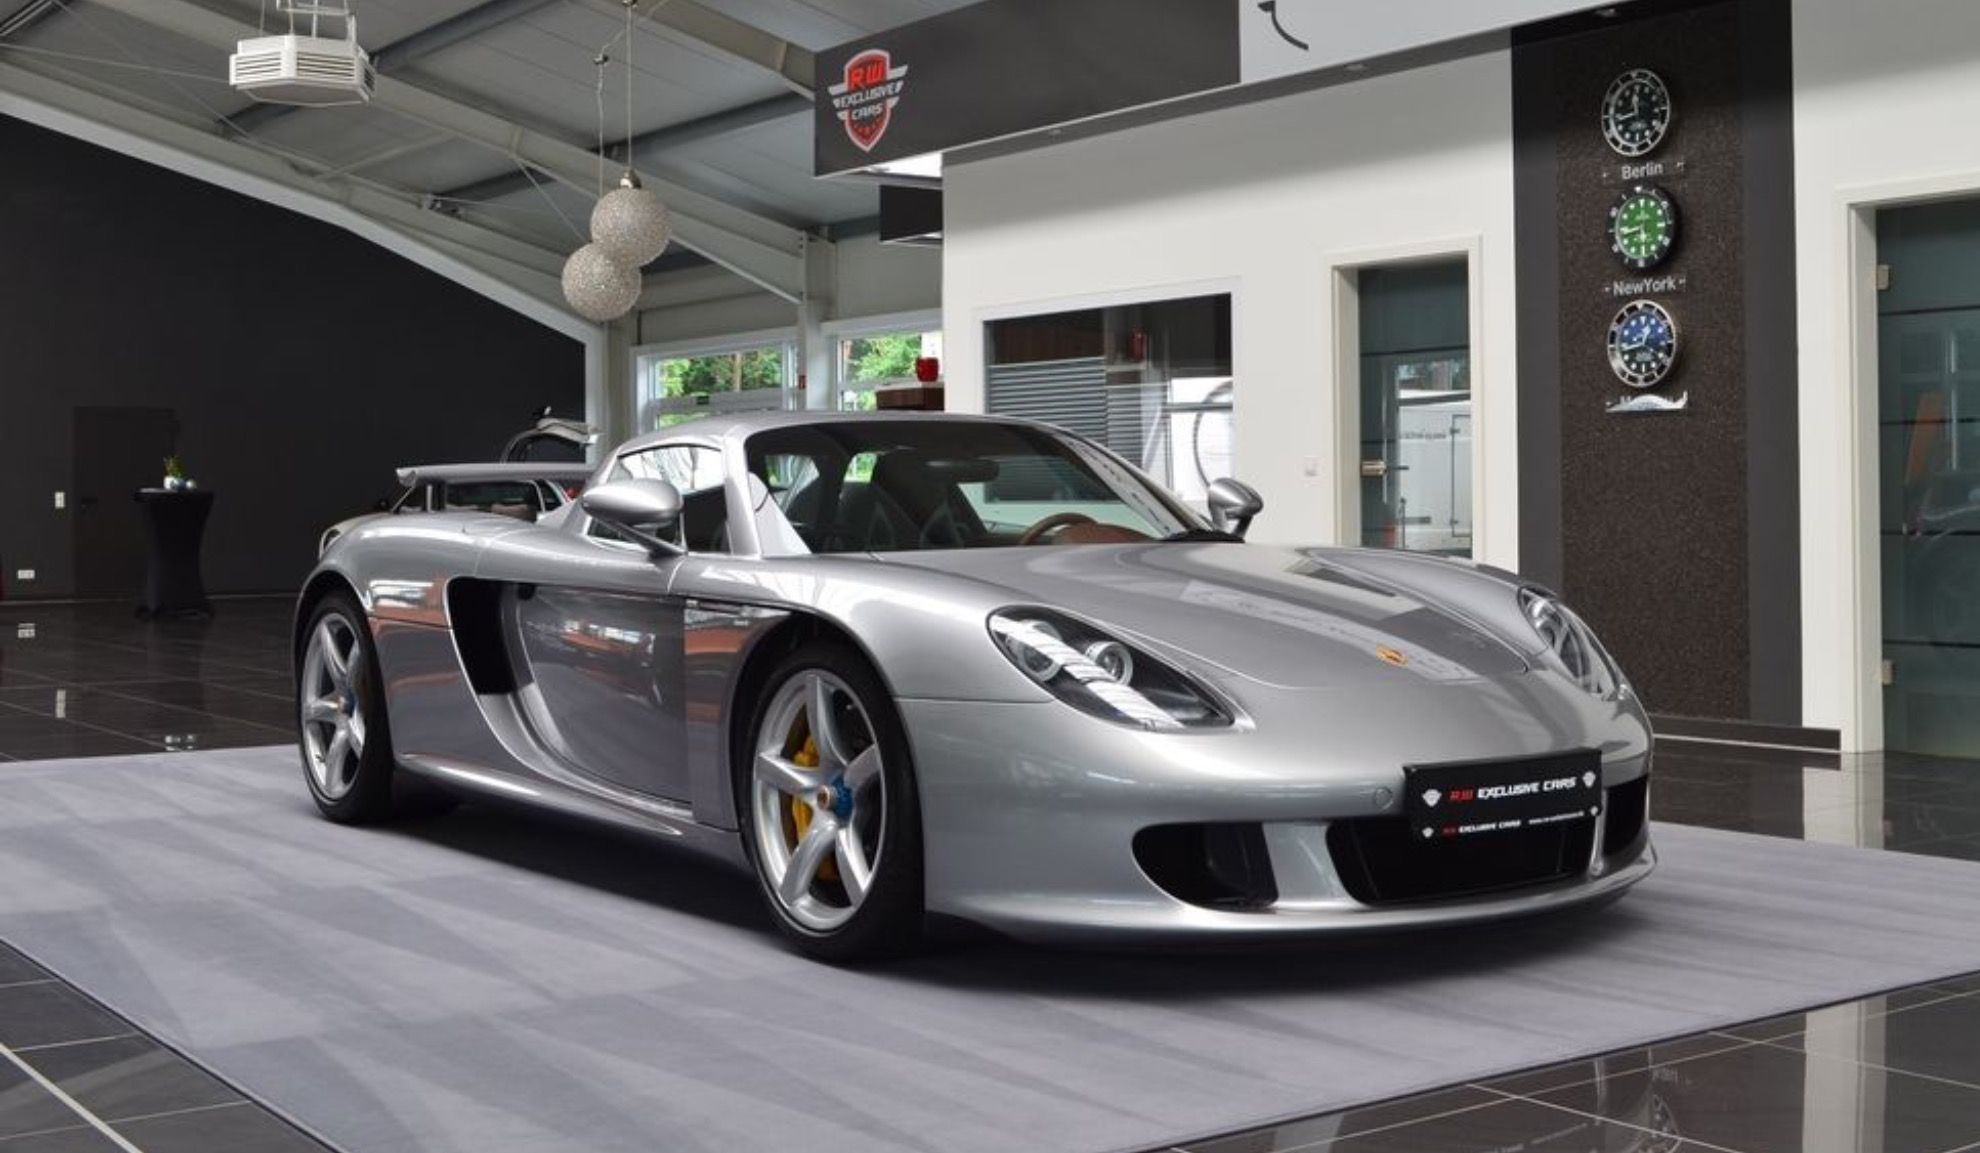 2005 Porsche Carrera Gt For Sale At R W Exclusive Cars For Eur 750k